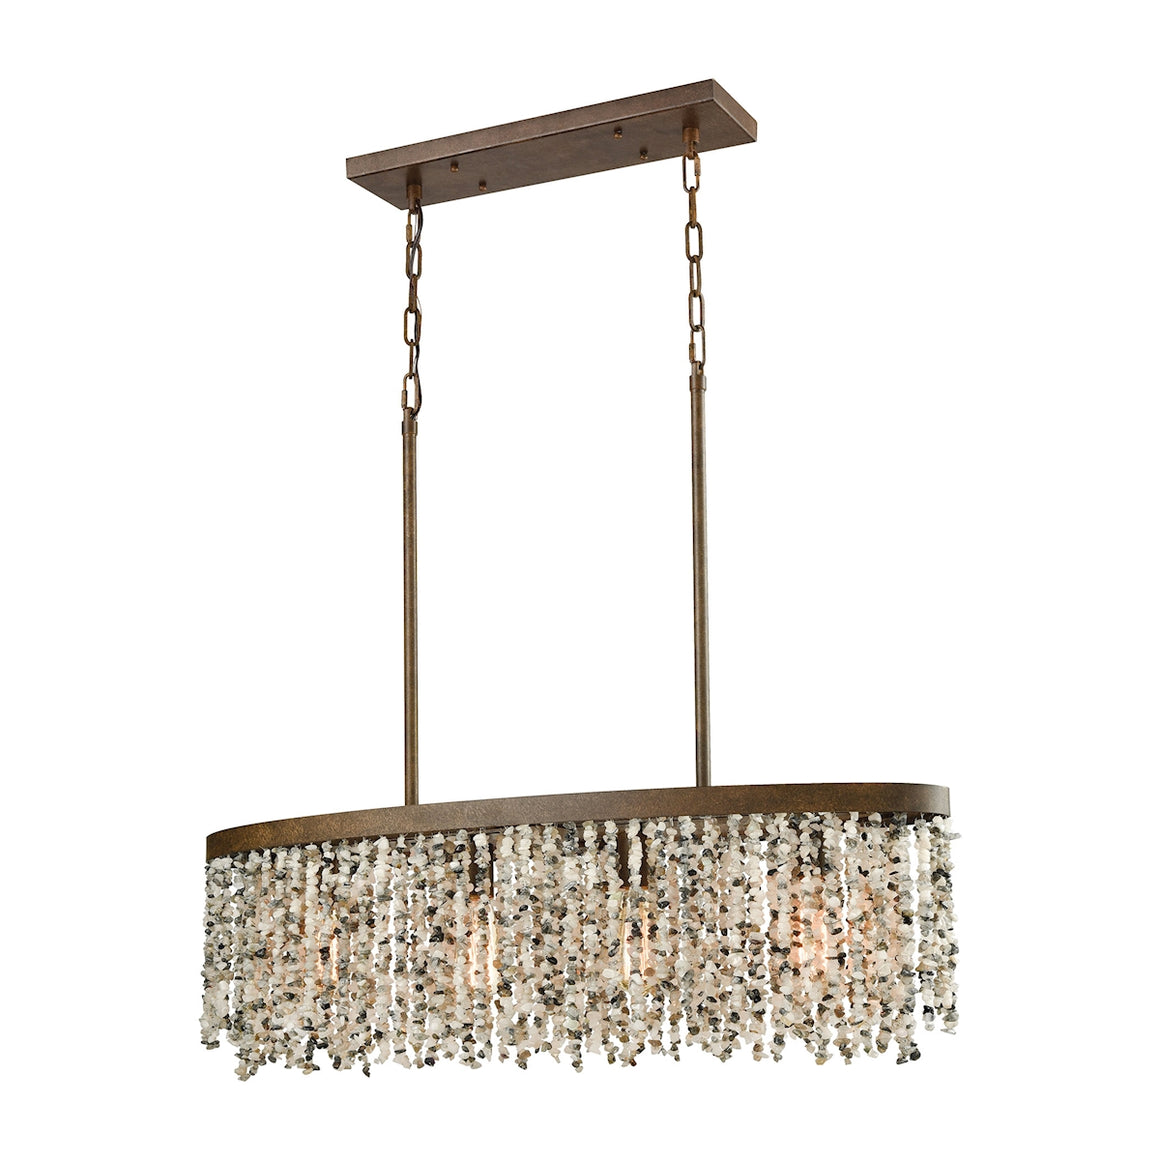 Agate Stones 4 Light Chandelier In Weathered Bronze With Gray Agate Stones 65306/4 by Elk Lighting